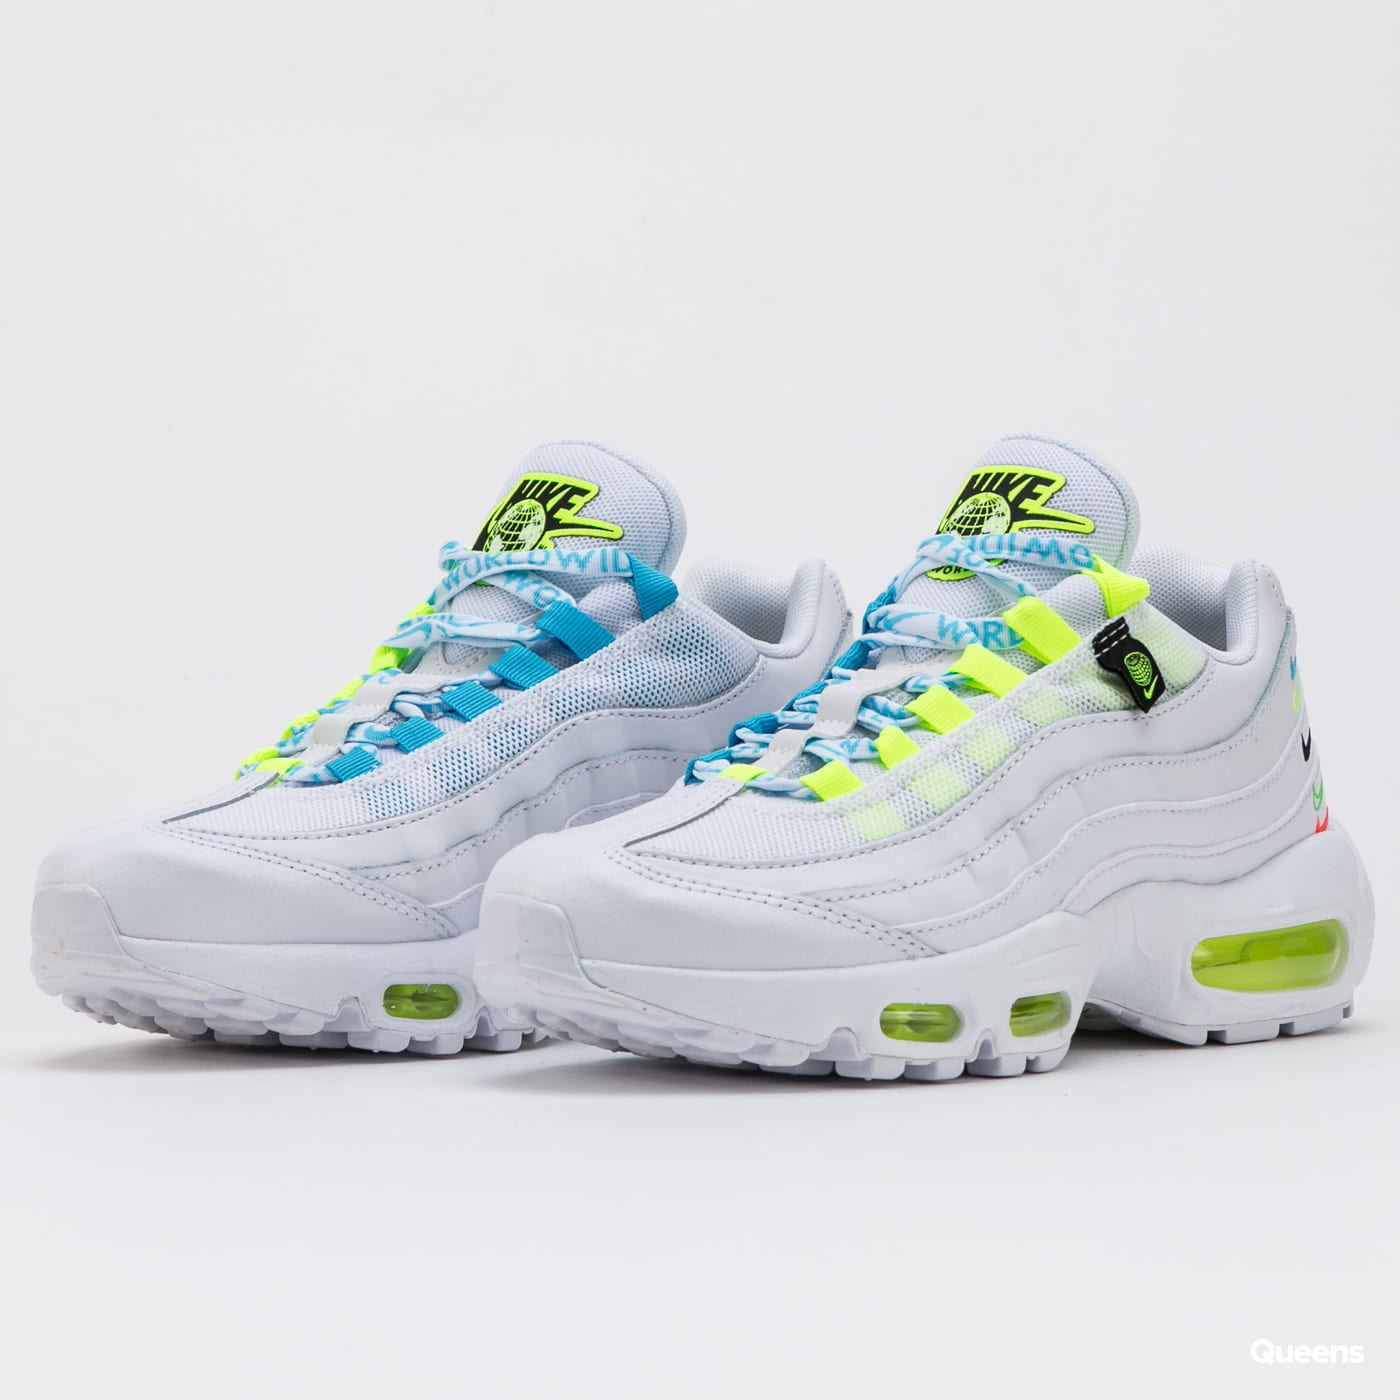 Volver a disparar Caballo Inolvidable  Nike W AIr Max 95 SE Worldwide (CV9030-100) – Queens 💚